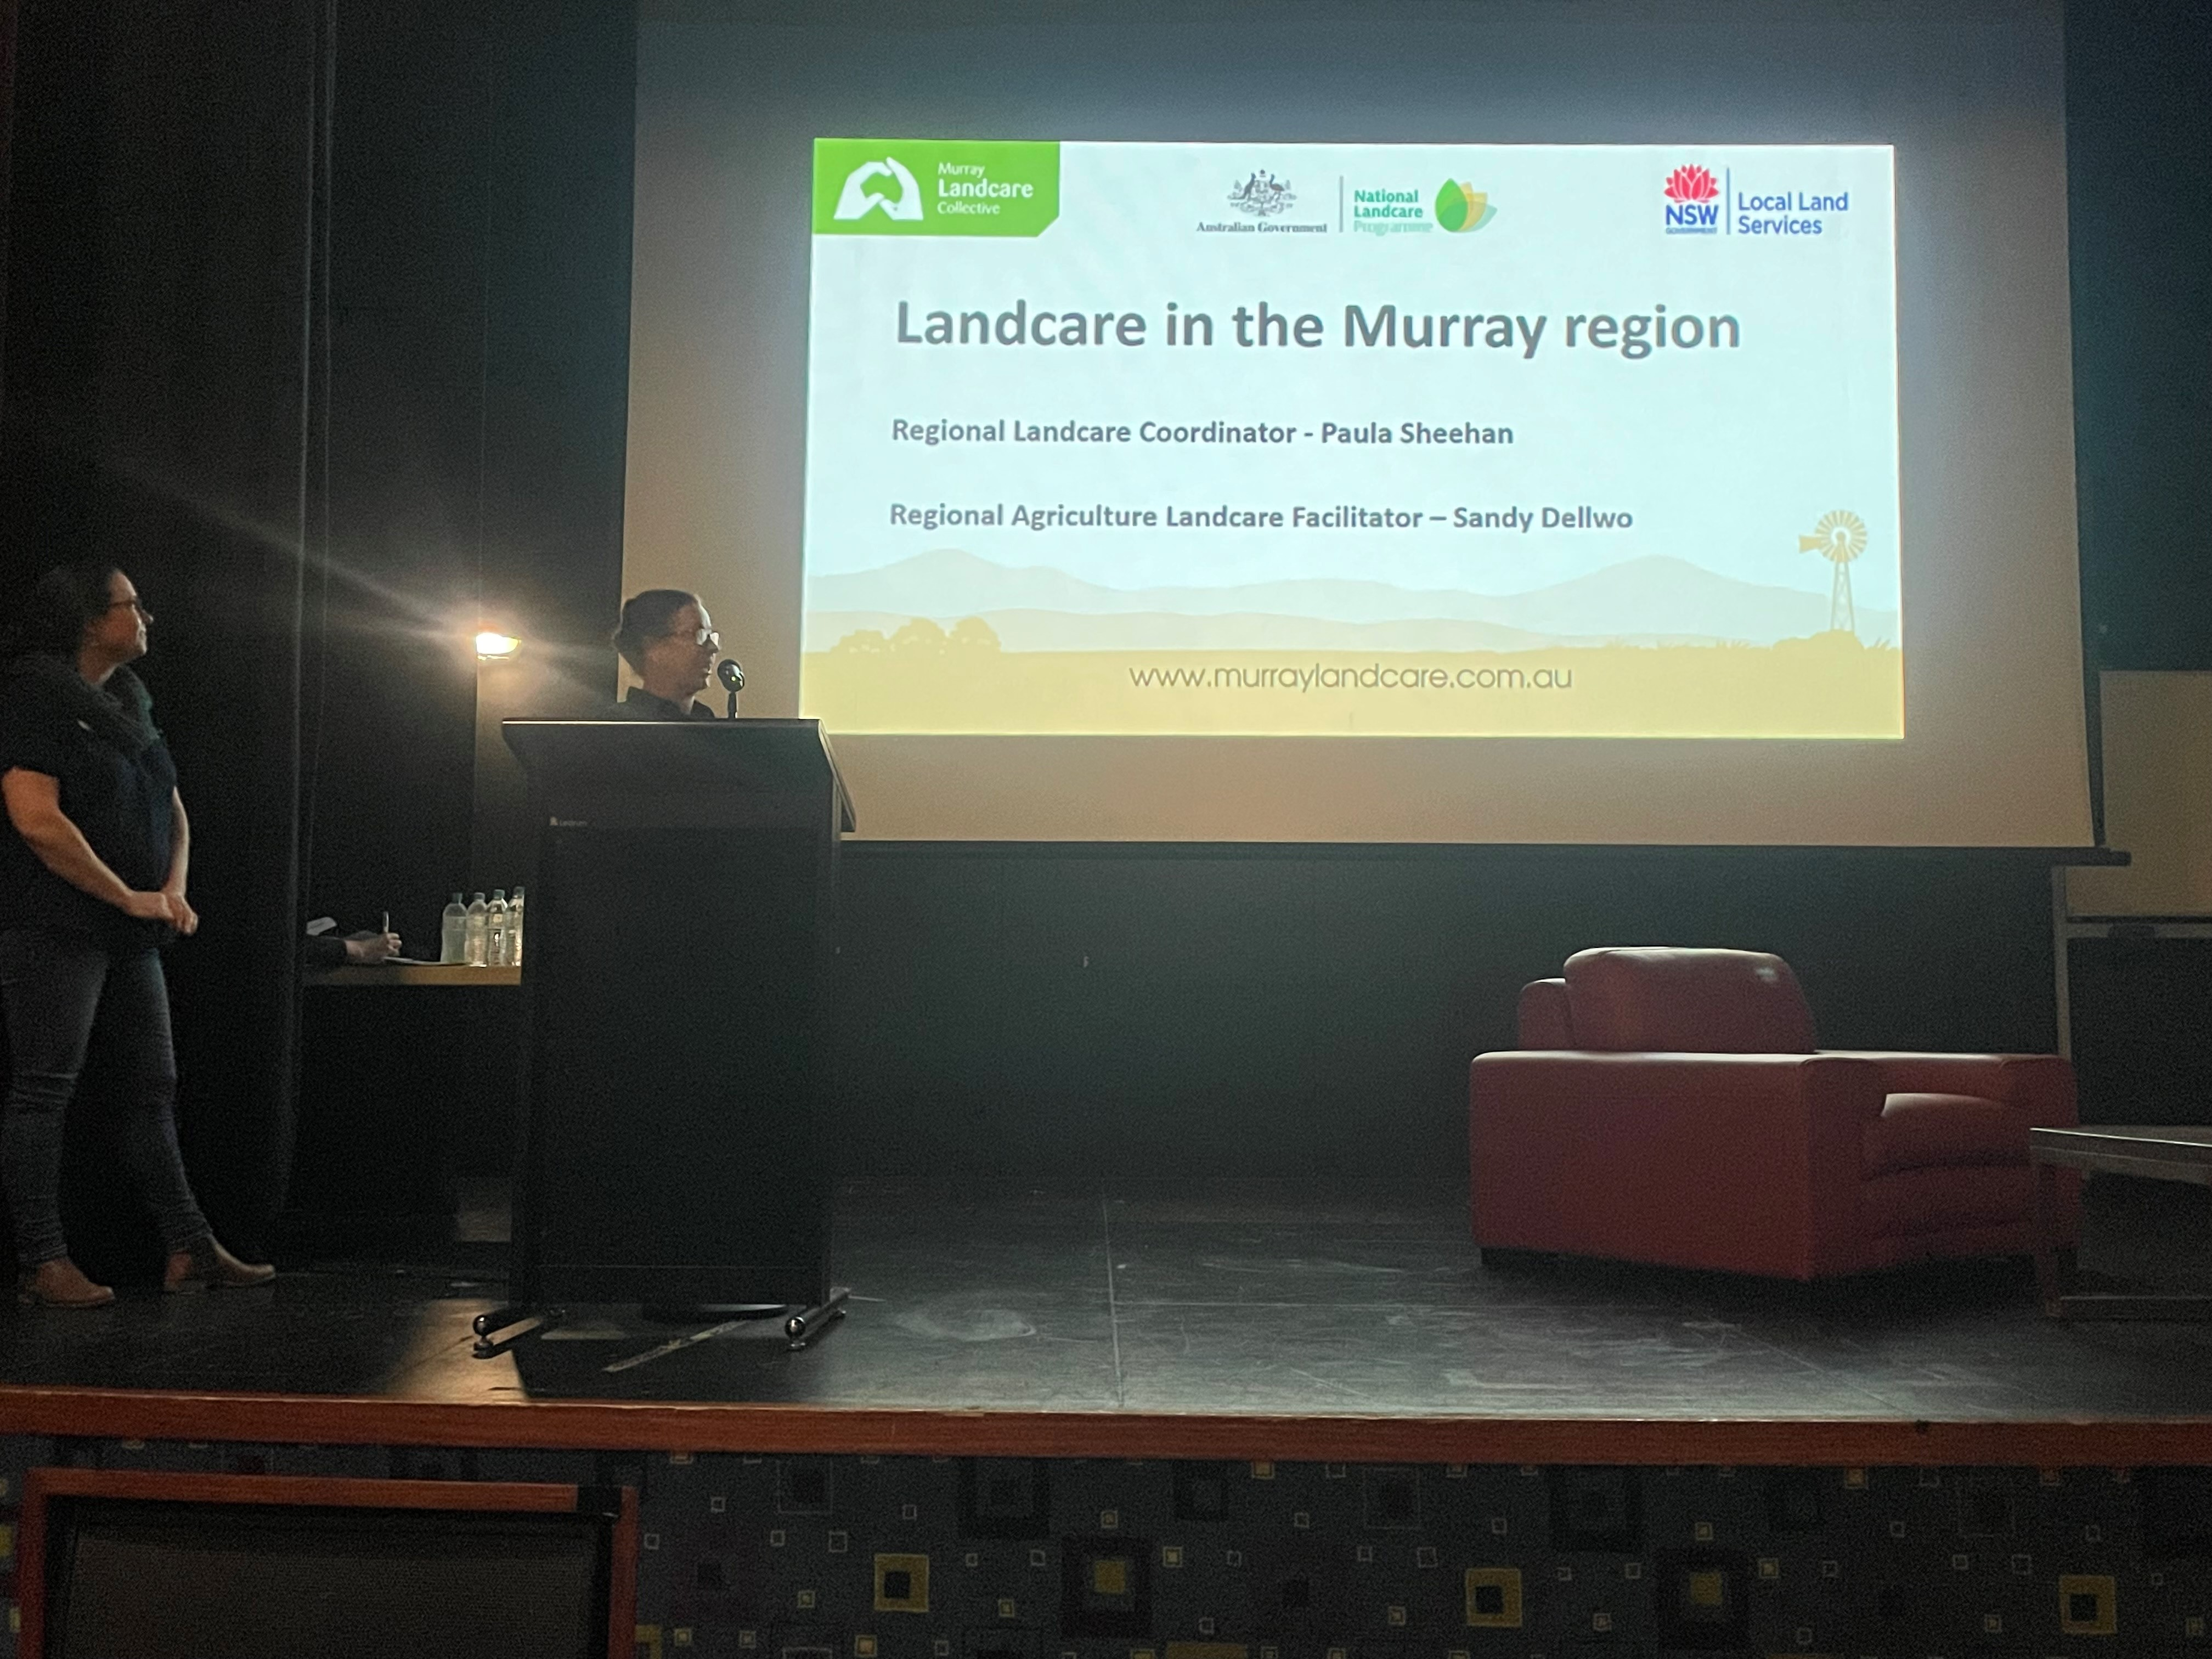 Presentation screen with the words Landcare in the Murray region